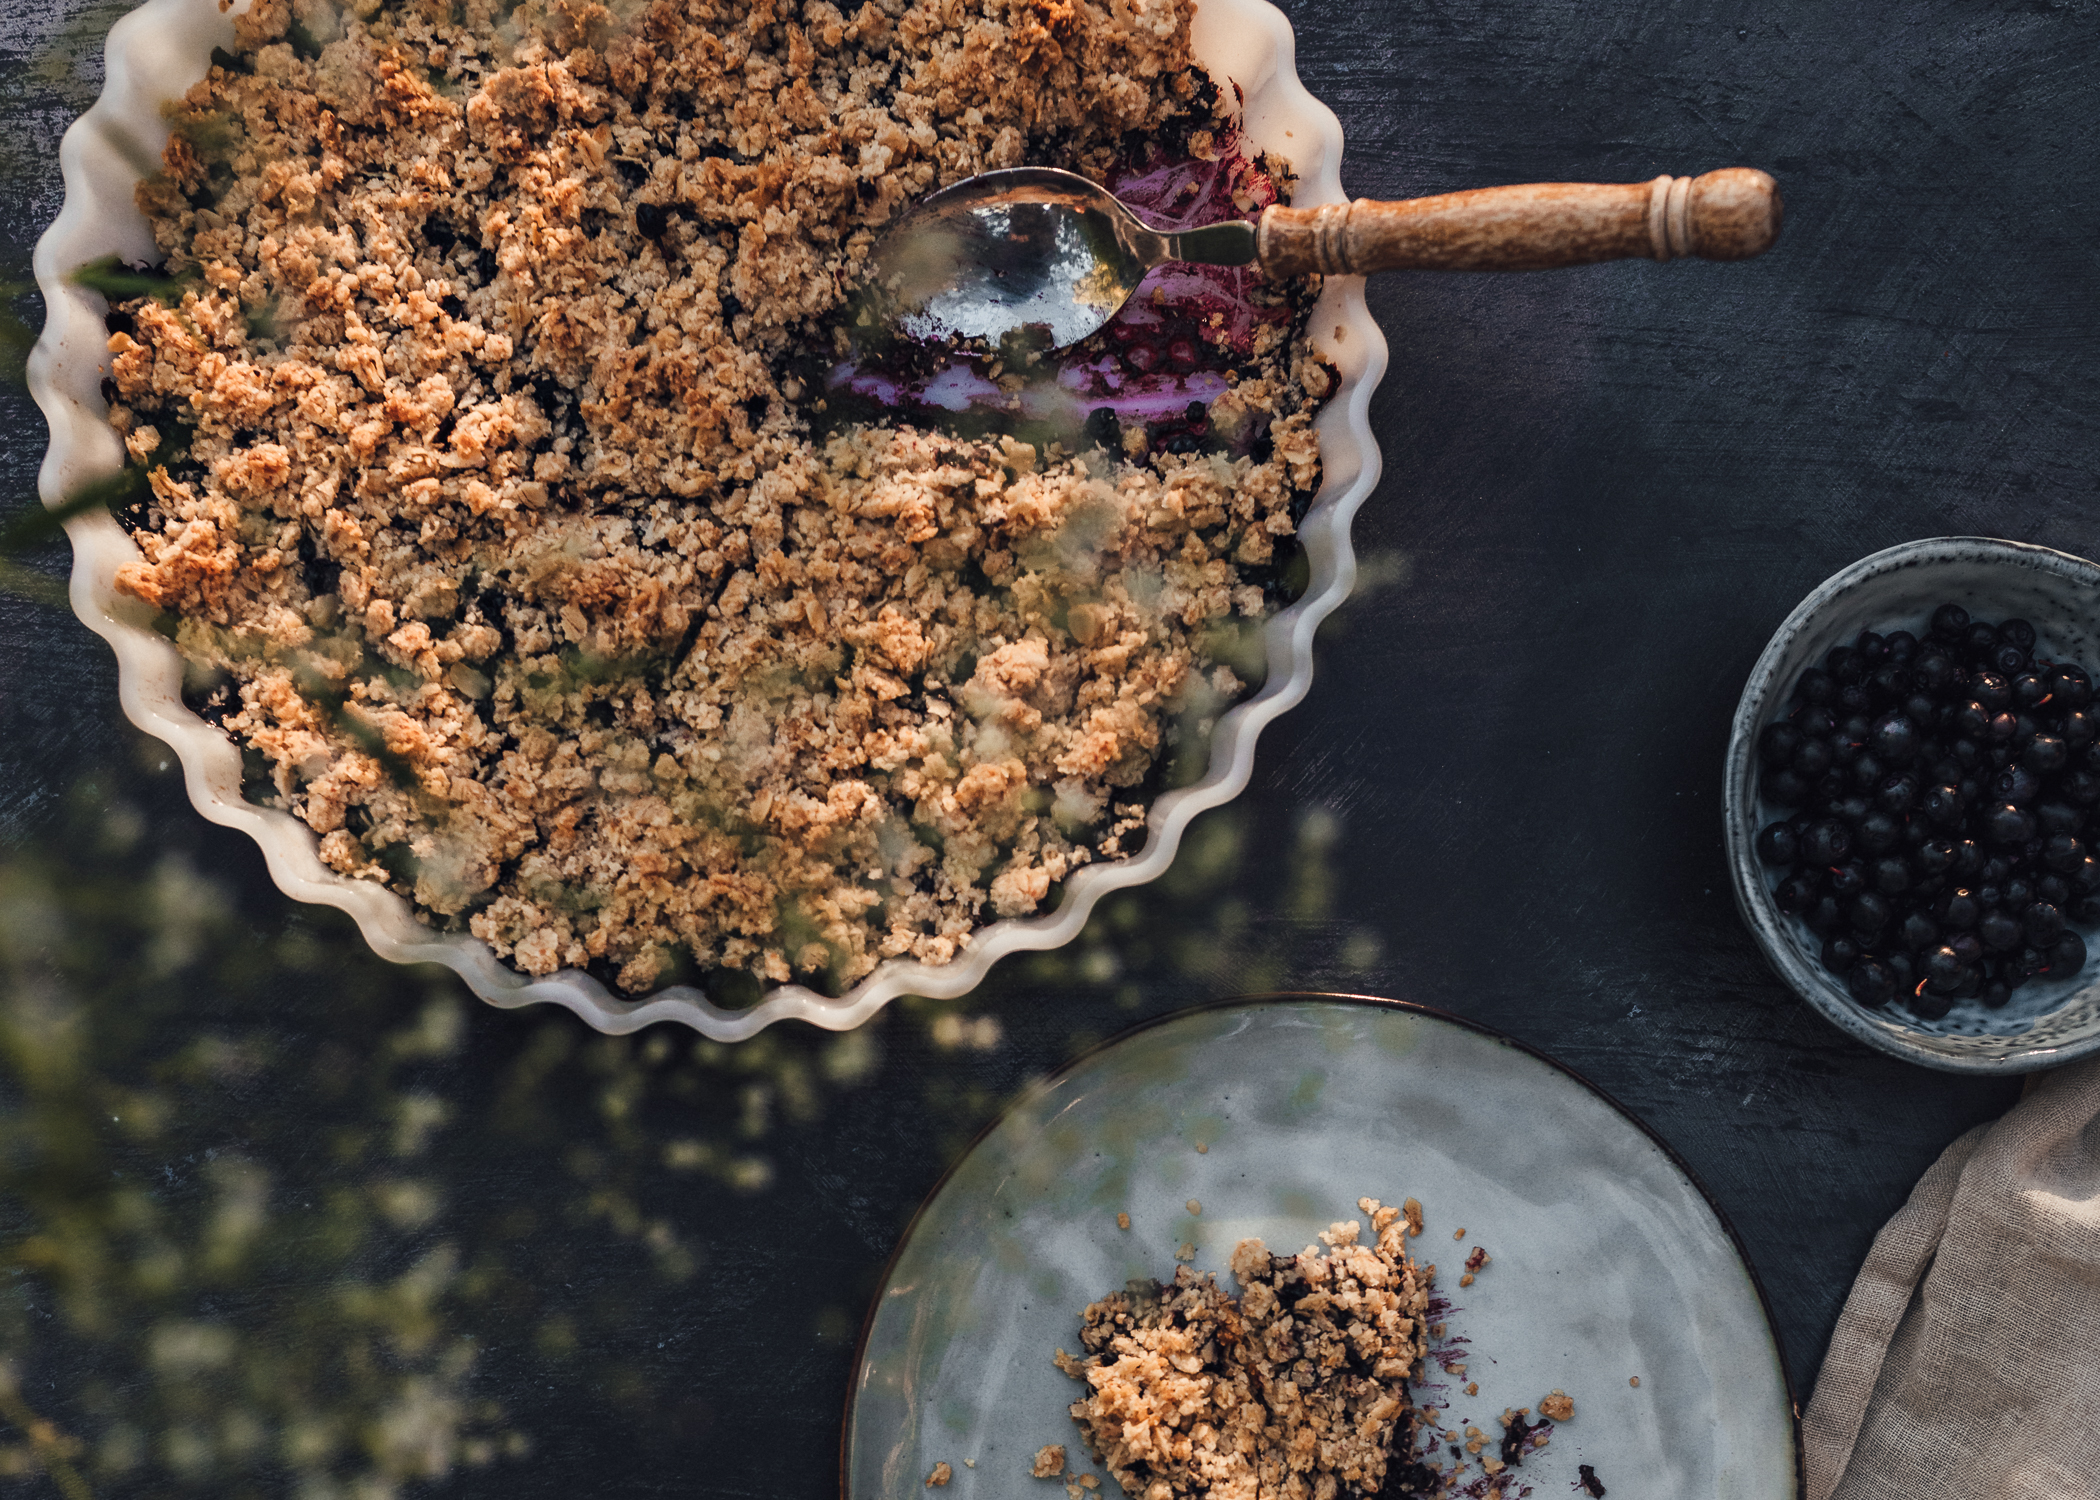 Swedish Blueberry Crumble Pie